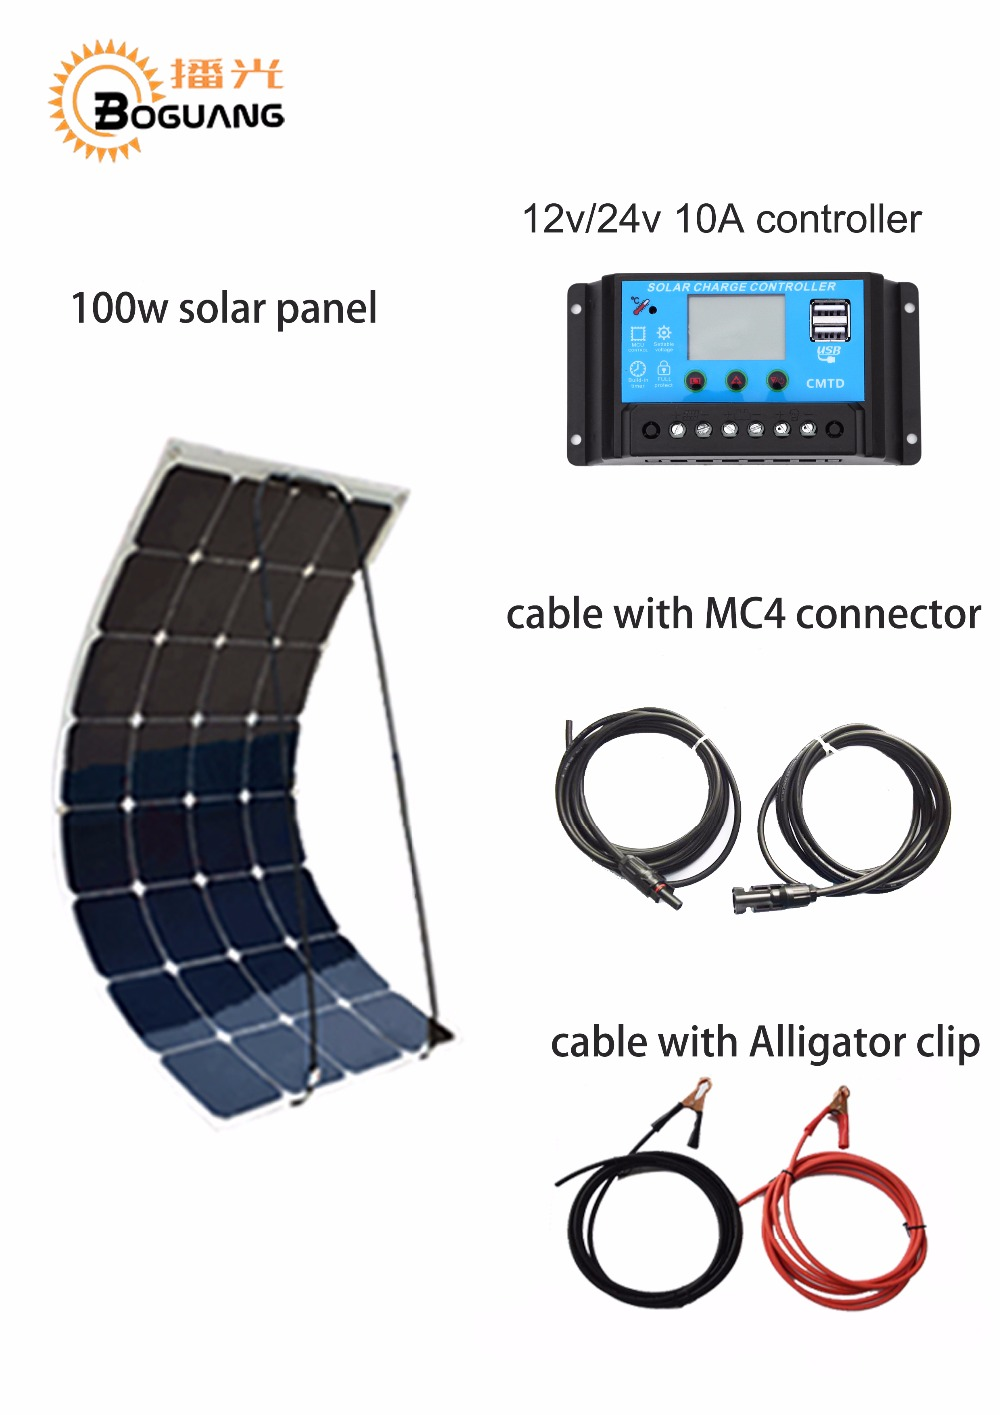 BOGUANG 100W DIY Solar System Kit 100W PV flexible solar panel 12v battery 10A controller MC4 connector RV/Boat Yard power solarparts 2x 180w flexible solar panel cell system diy kits 12v for rv boat home front junction box mc4 connector 125 125mm sun